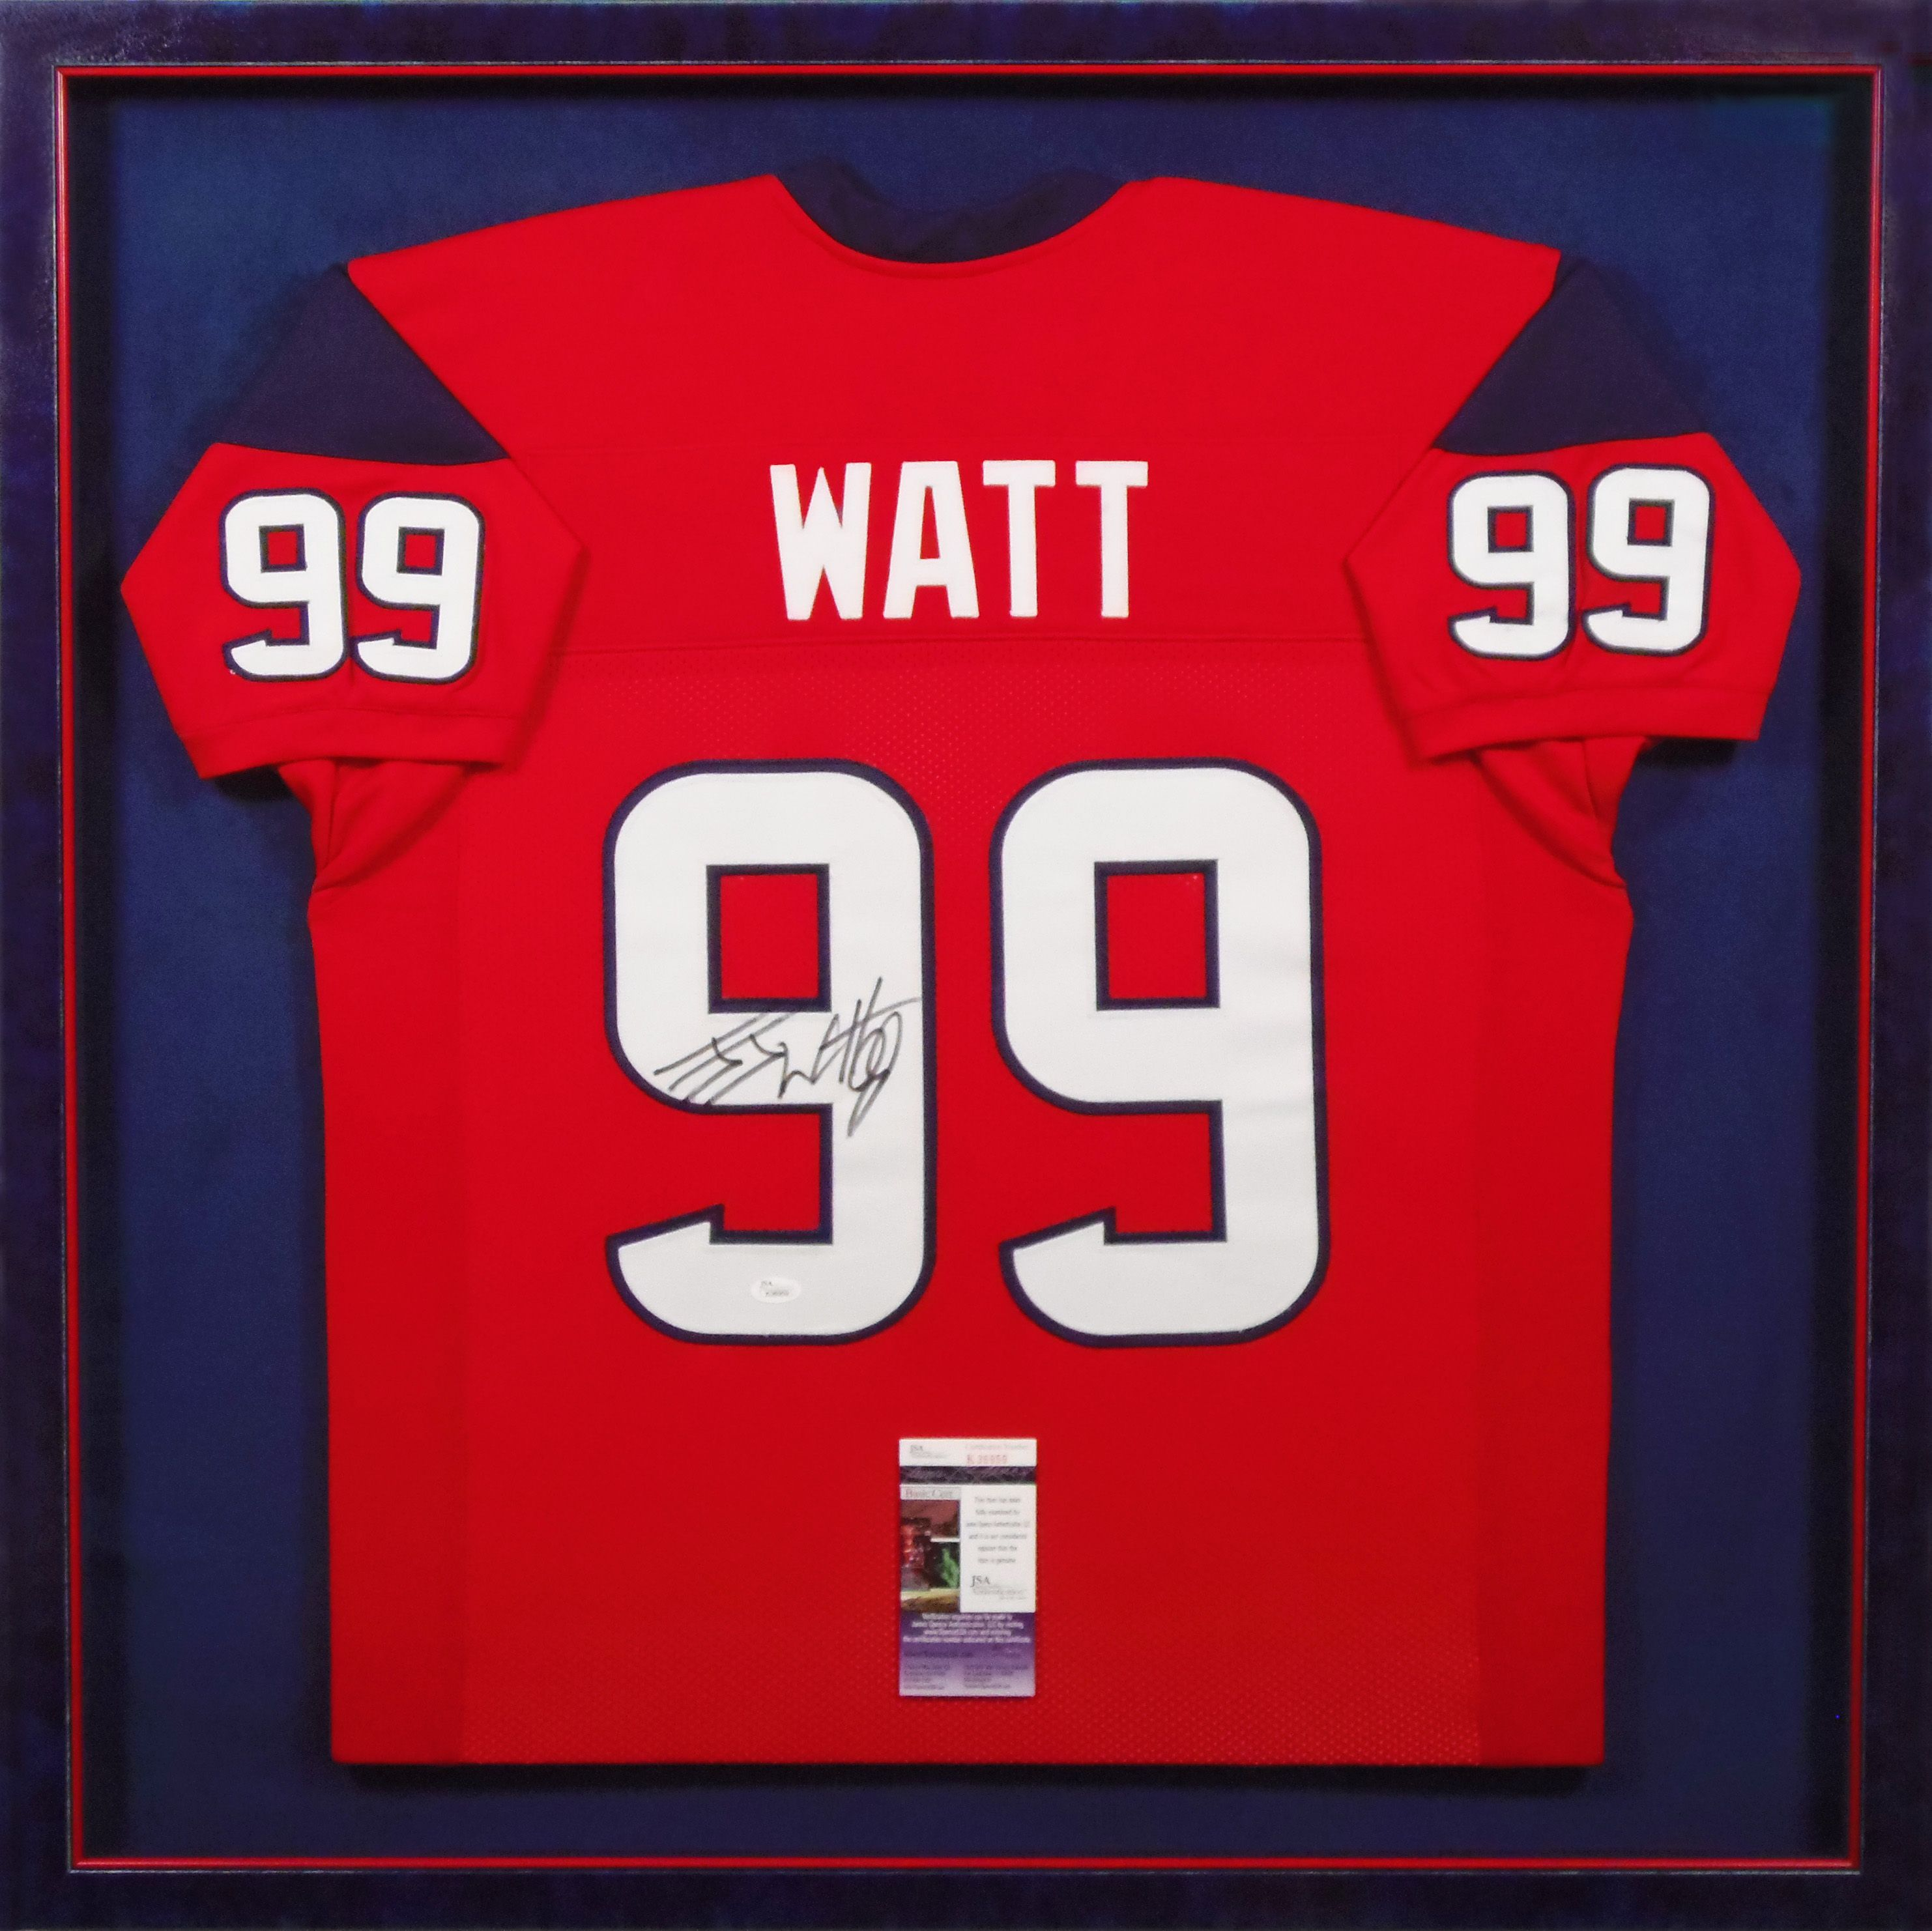 custom framed signed jj watt football jersey surrounded by the houston texans colors designed